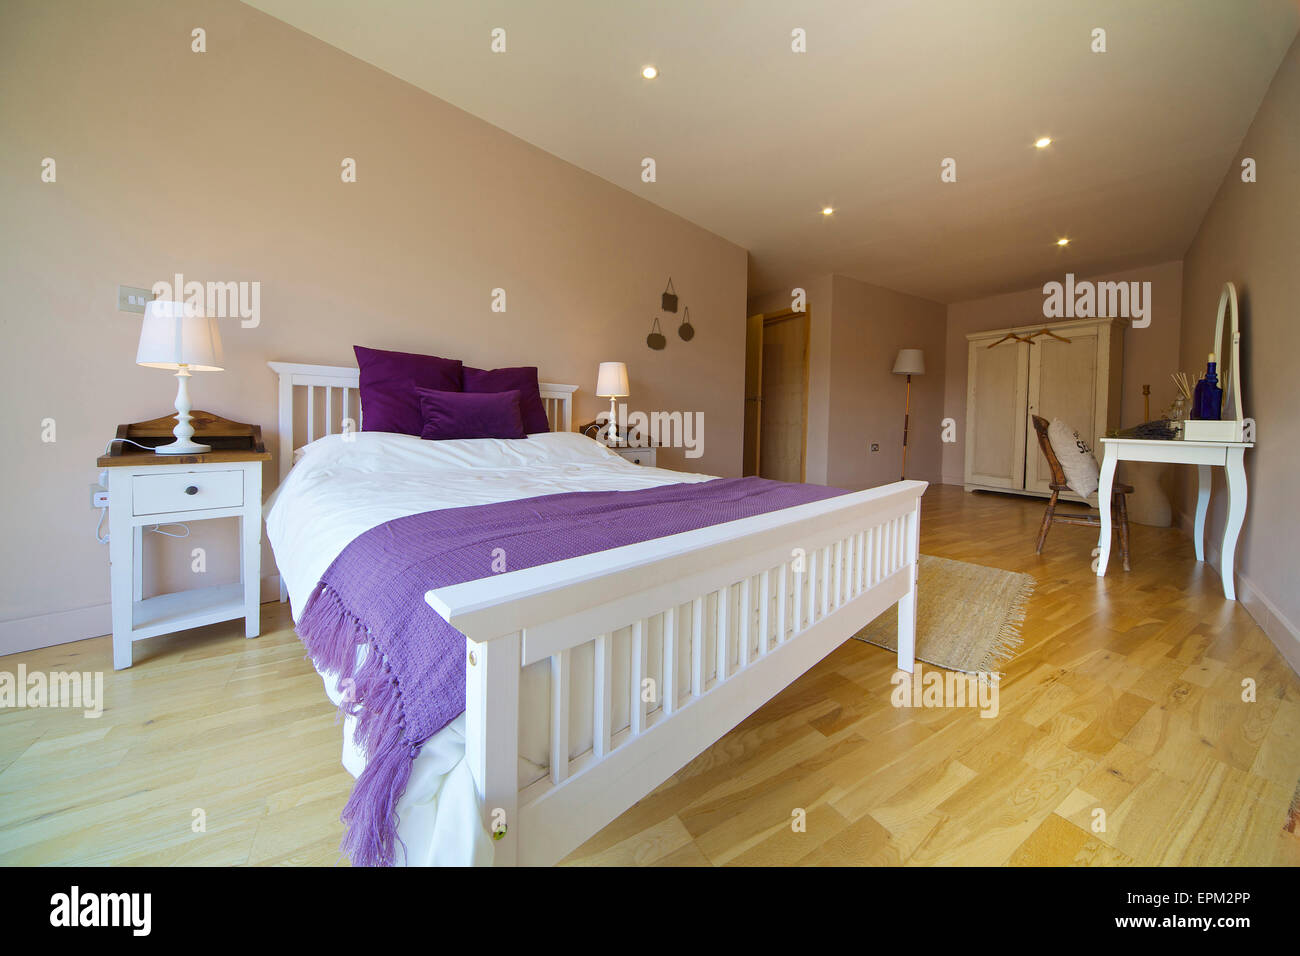 Double bedroom in 419 Wick Lane, London. New apartments built by Development securities Plc opposite the Olympic - Stock Image